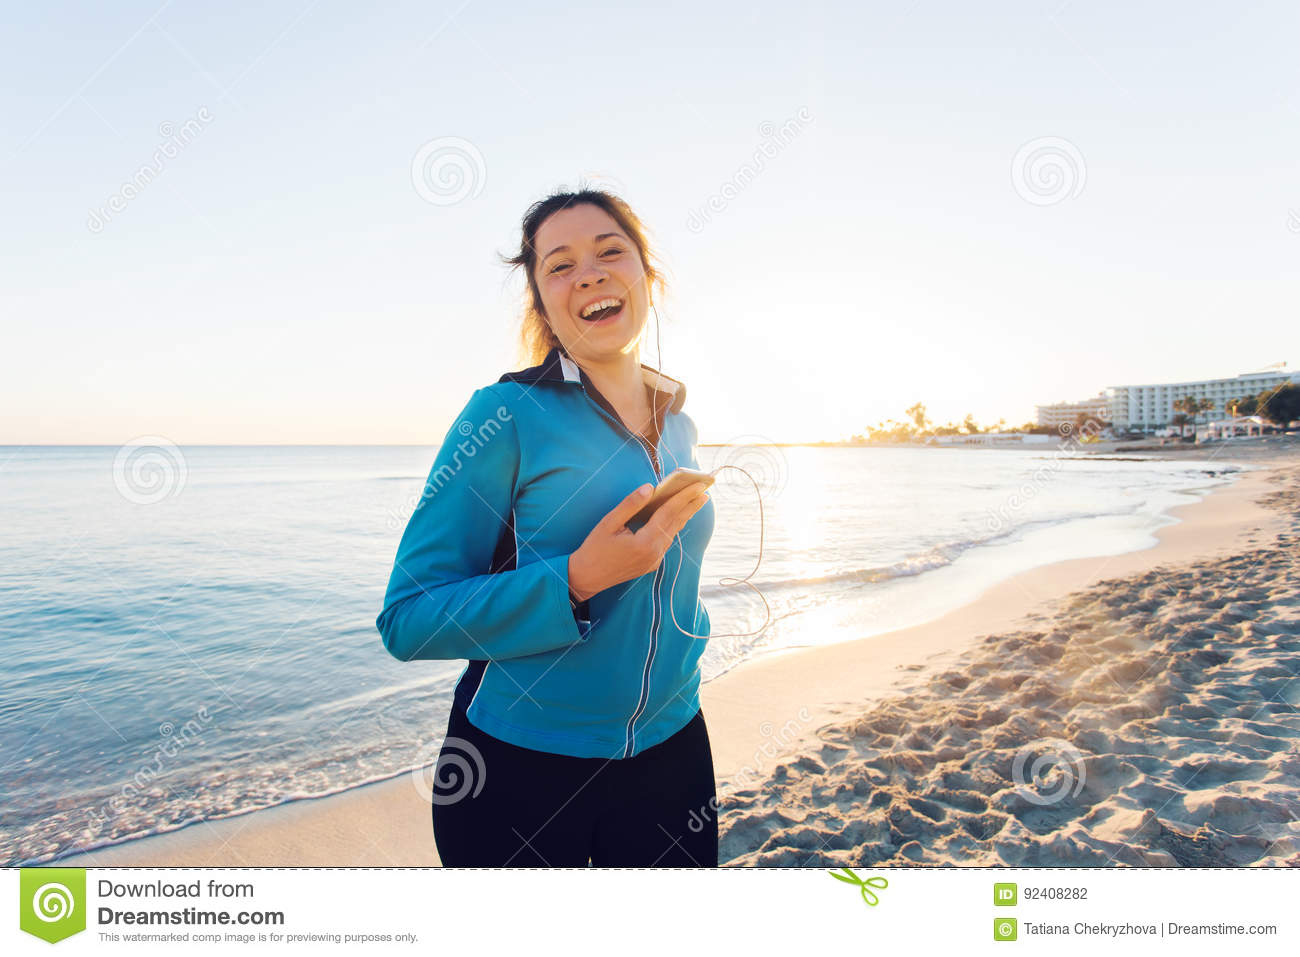 Outdoor sport, fitness gadget and people concept - Smiling female fitness holding smartphone with earphones.